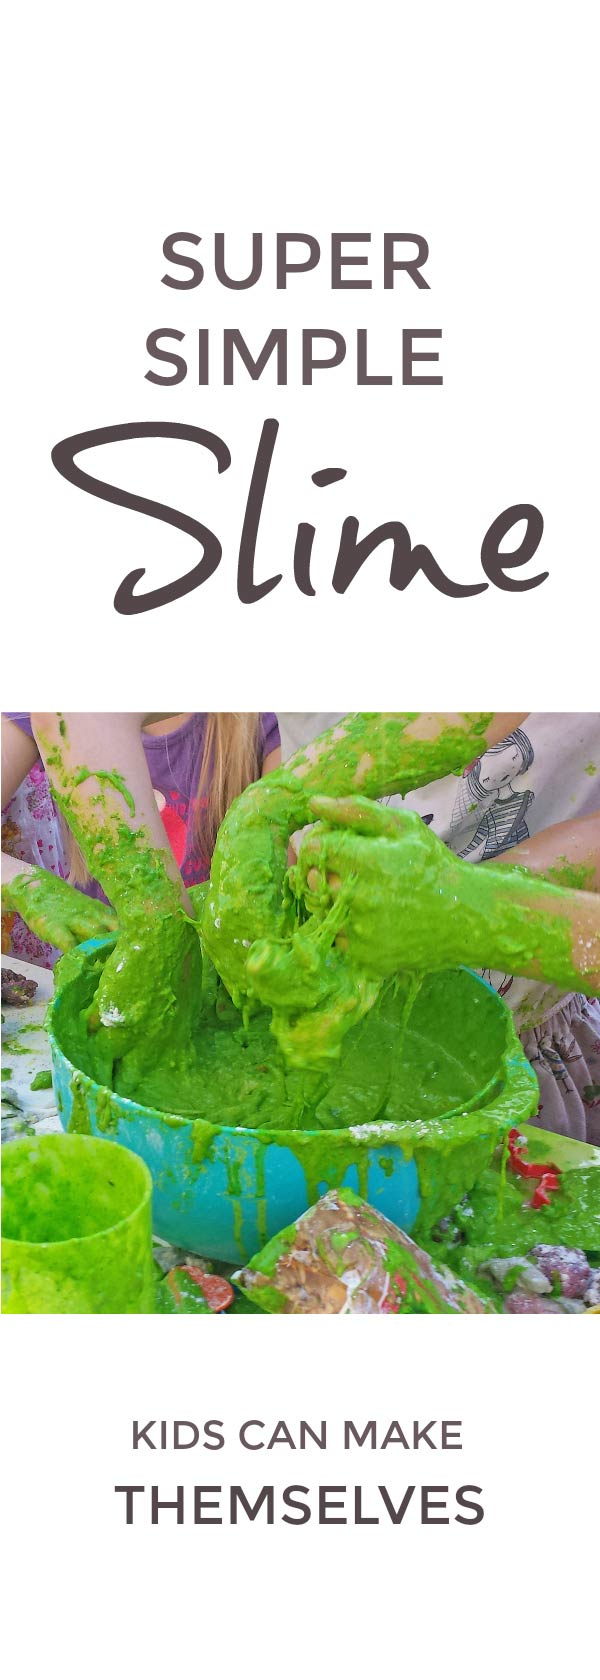 Super simple slime kids can make themselves #slime #playdough #science #STEAM #nonnewtonian